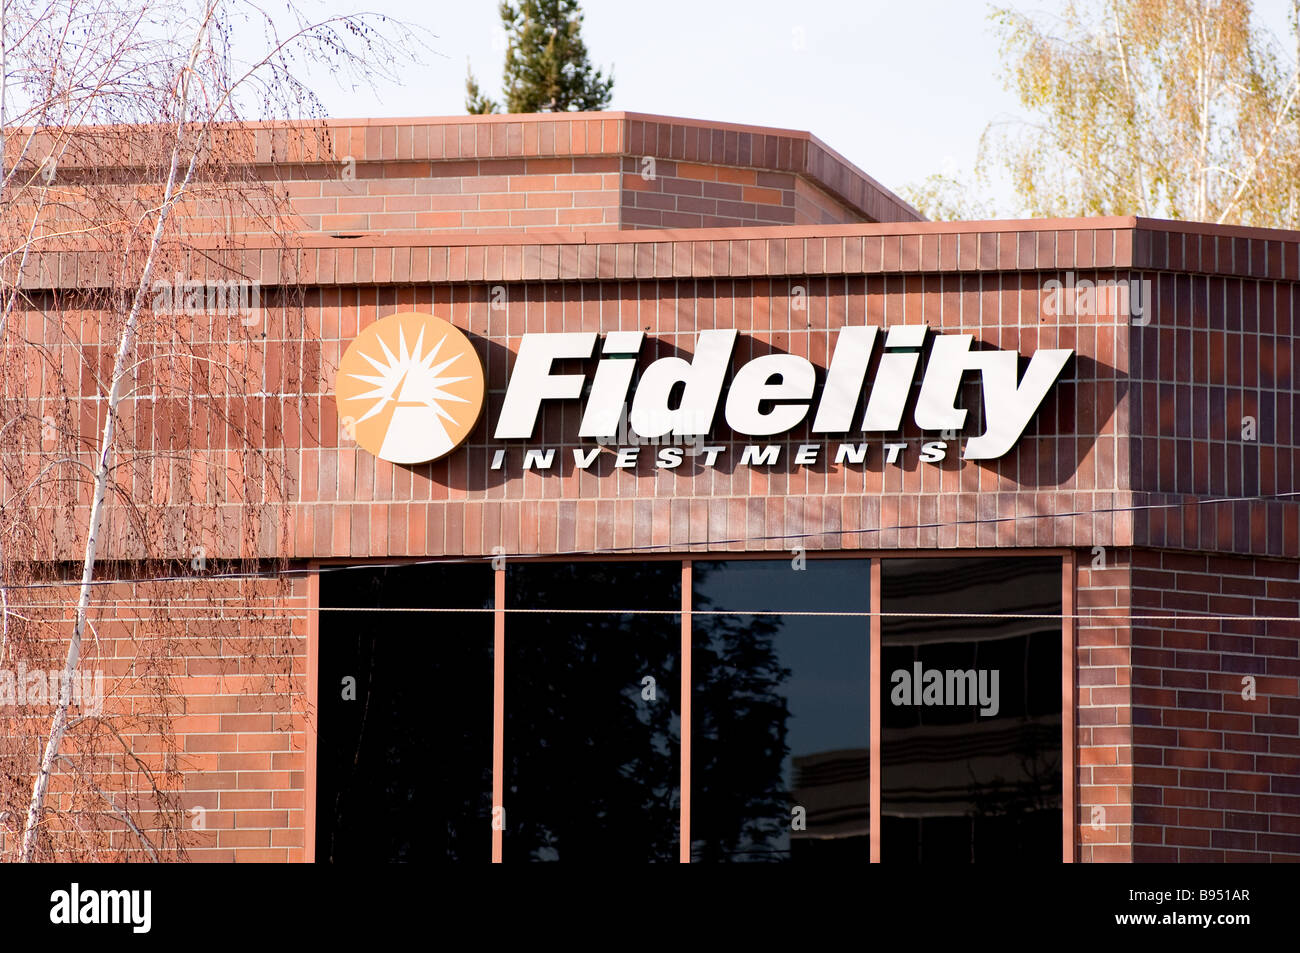 Fidelity building stock photos fidelity building stock images exterior sign on the outside of brick building showing fidelity investments sign and logo stock biocorpaavc Image collections